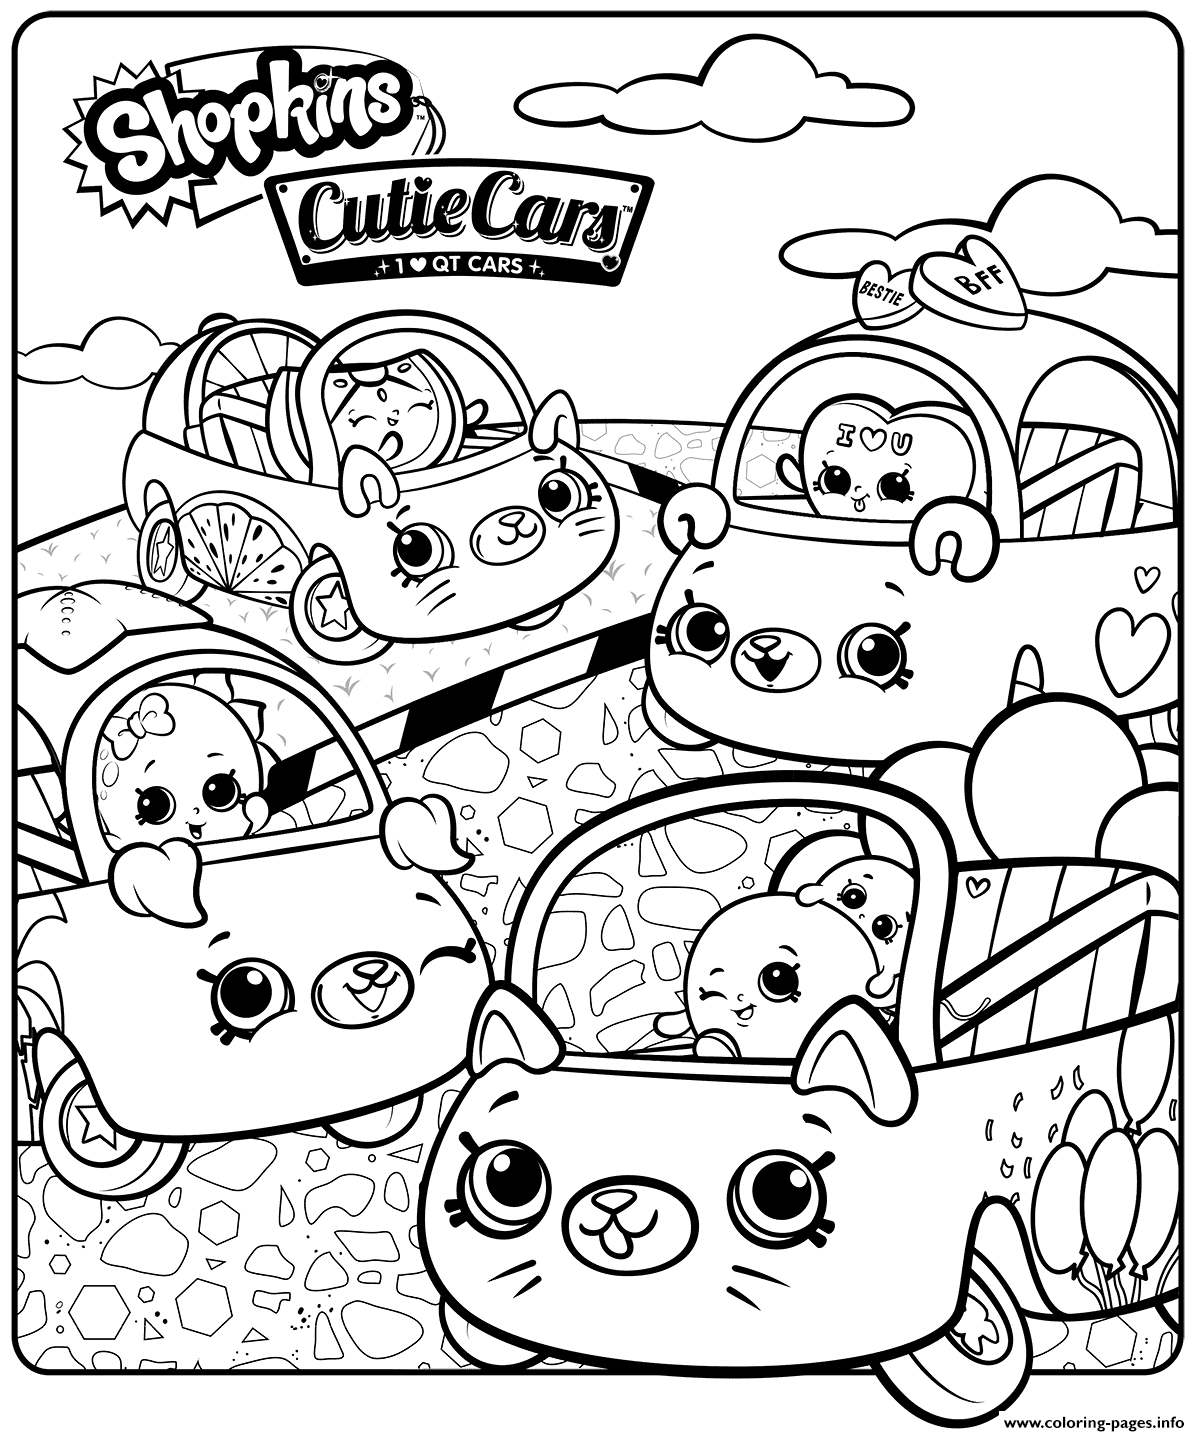 Shopkins Cutie Cars Sheet Coloring Pages Printable